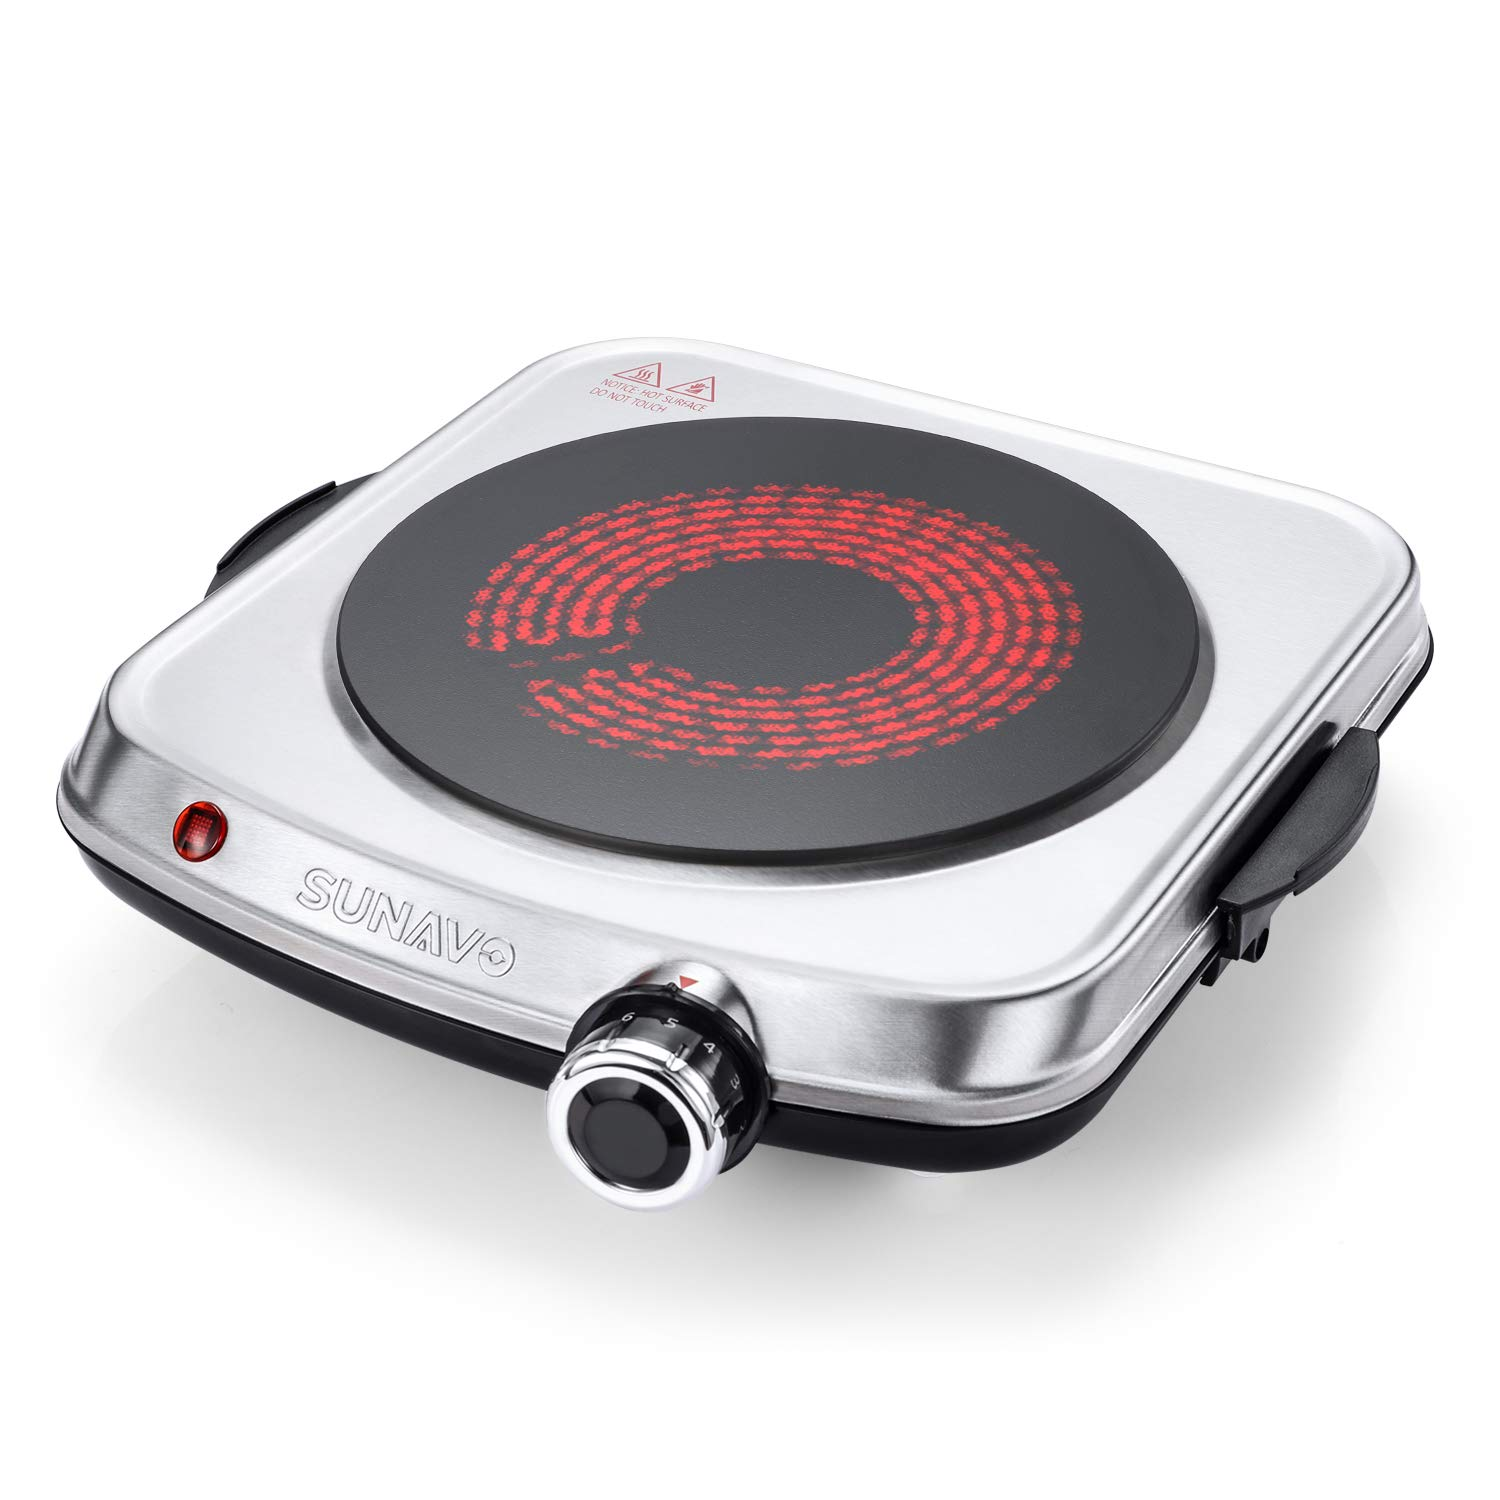 SUNAVO Infrared Burner Electric Single Ceramic Hot Plate 1200W Portable Cooktop with Handles 6 Power Levels